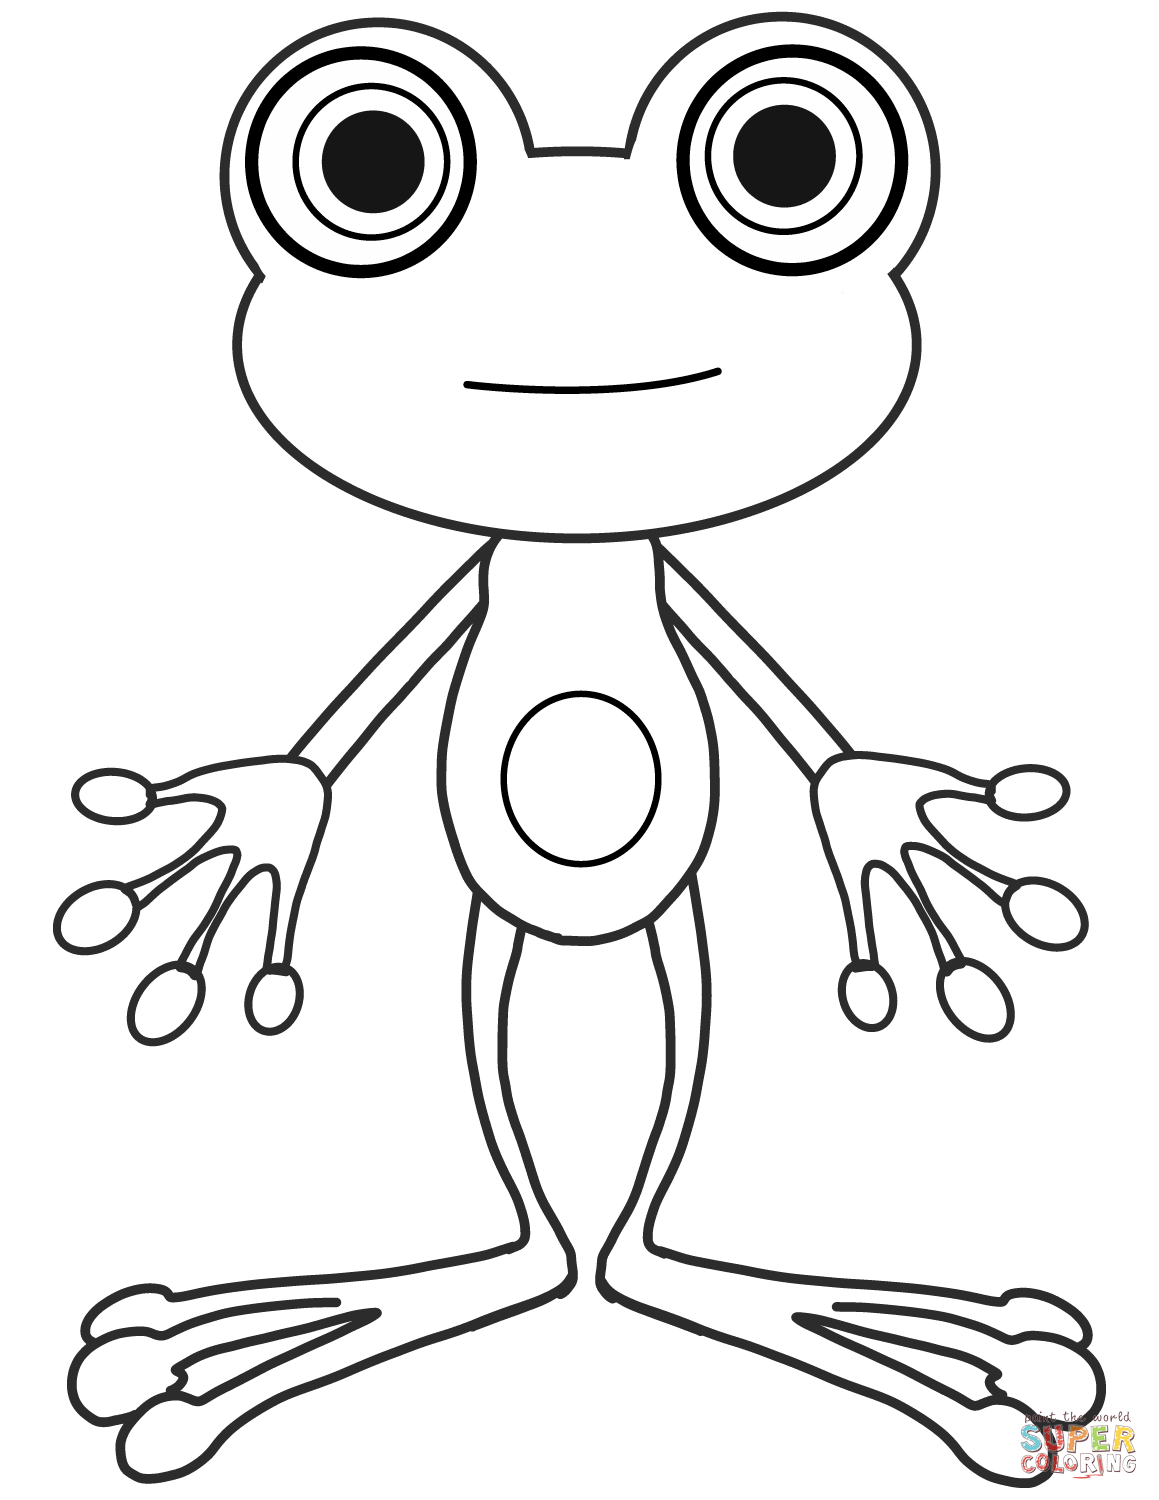 Cartoon Frog Coloring Page